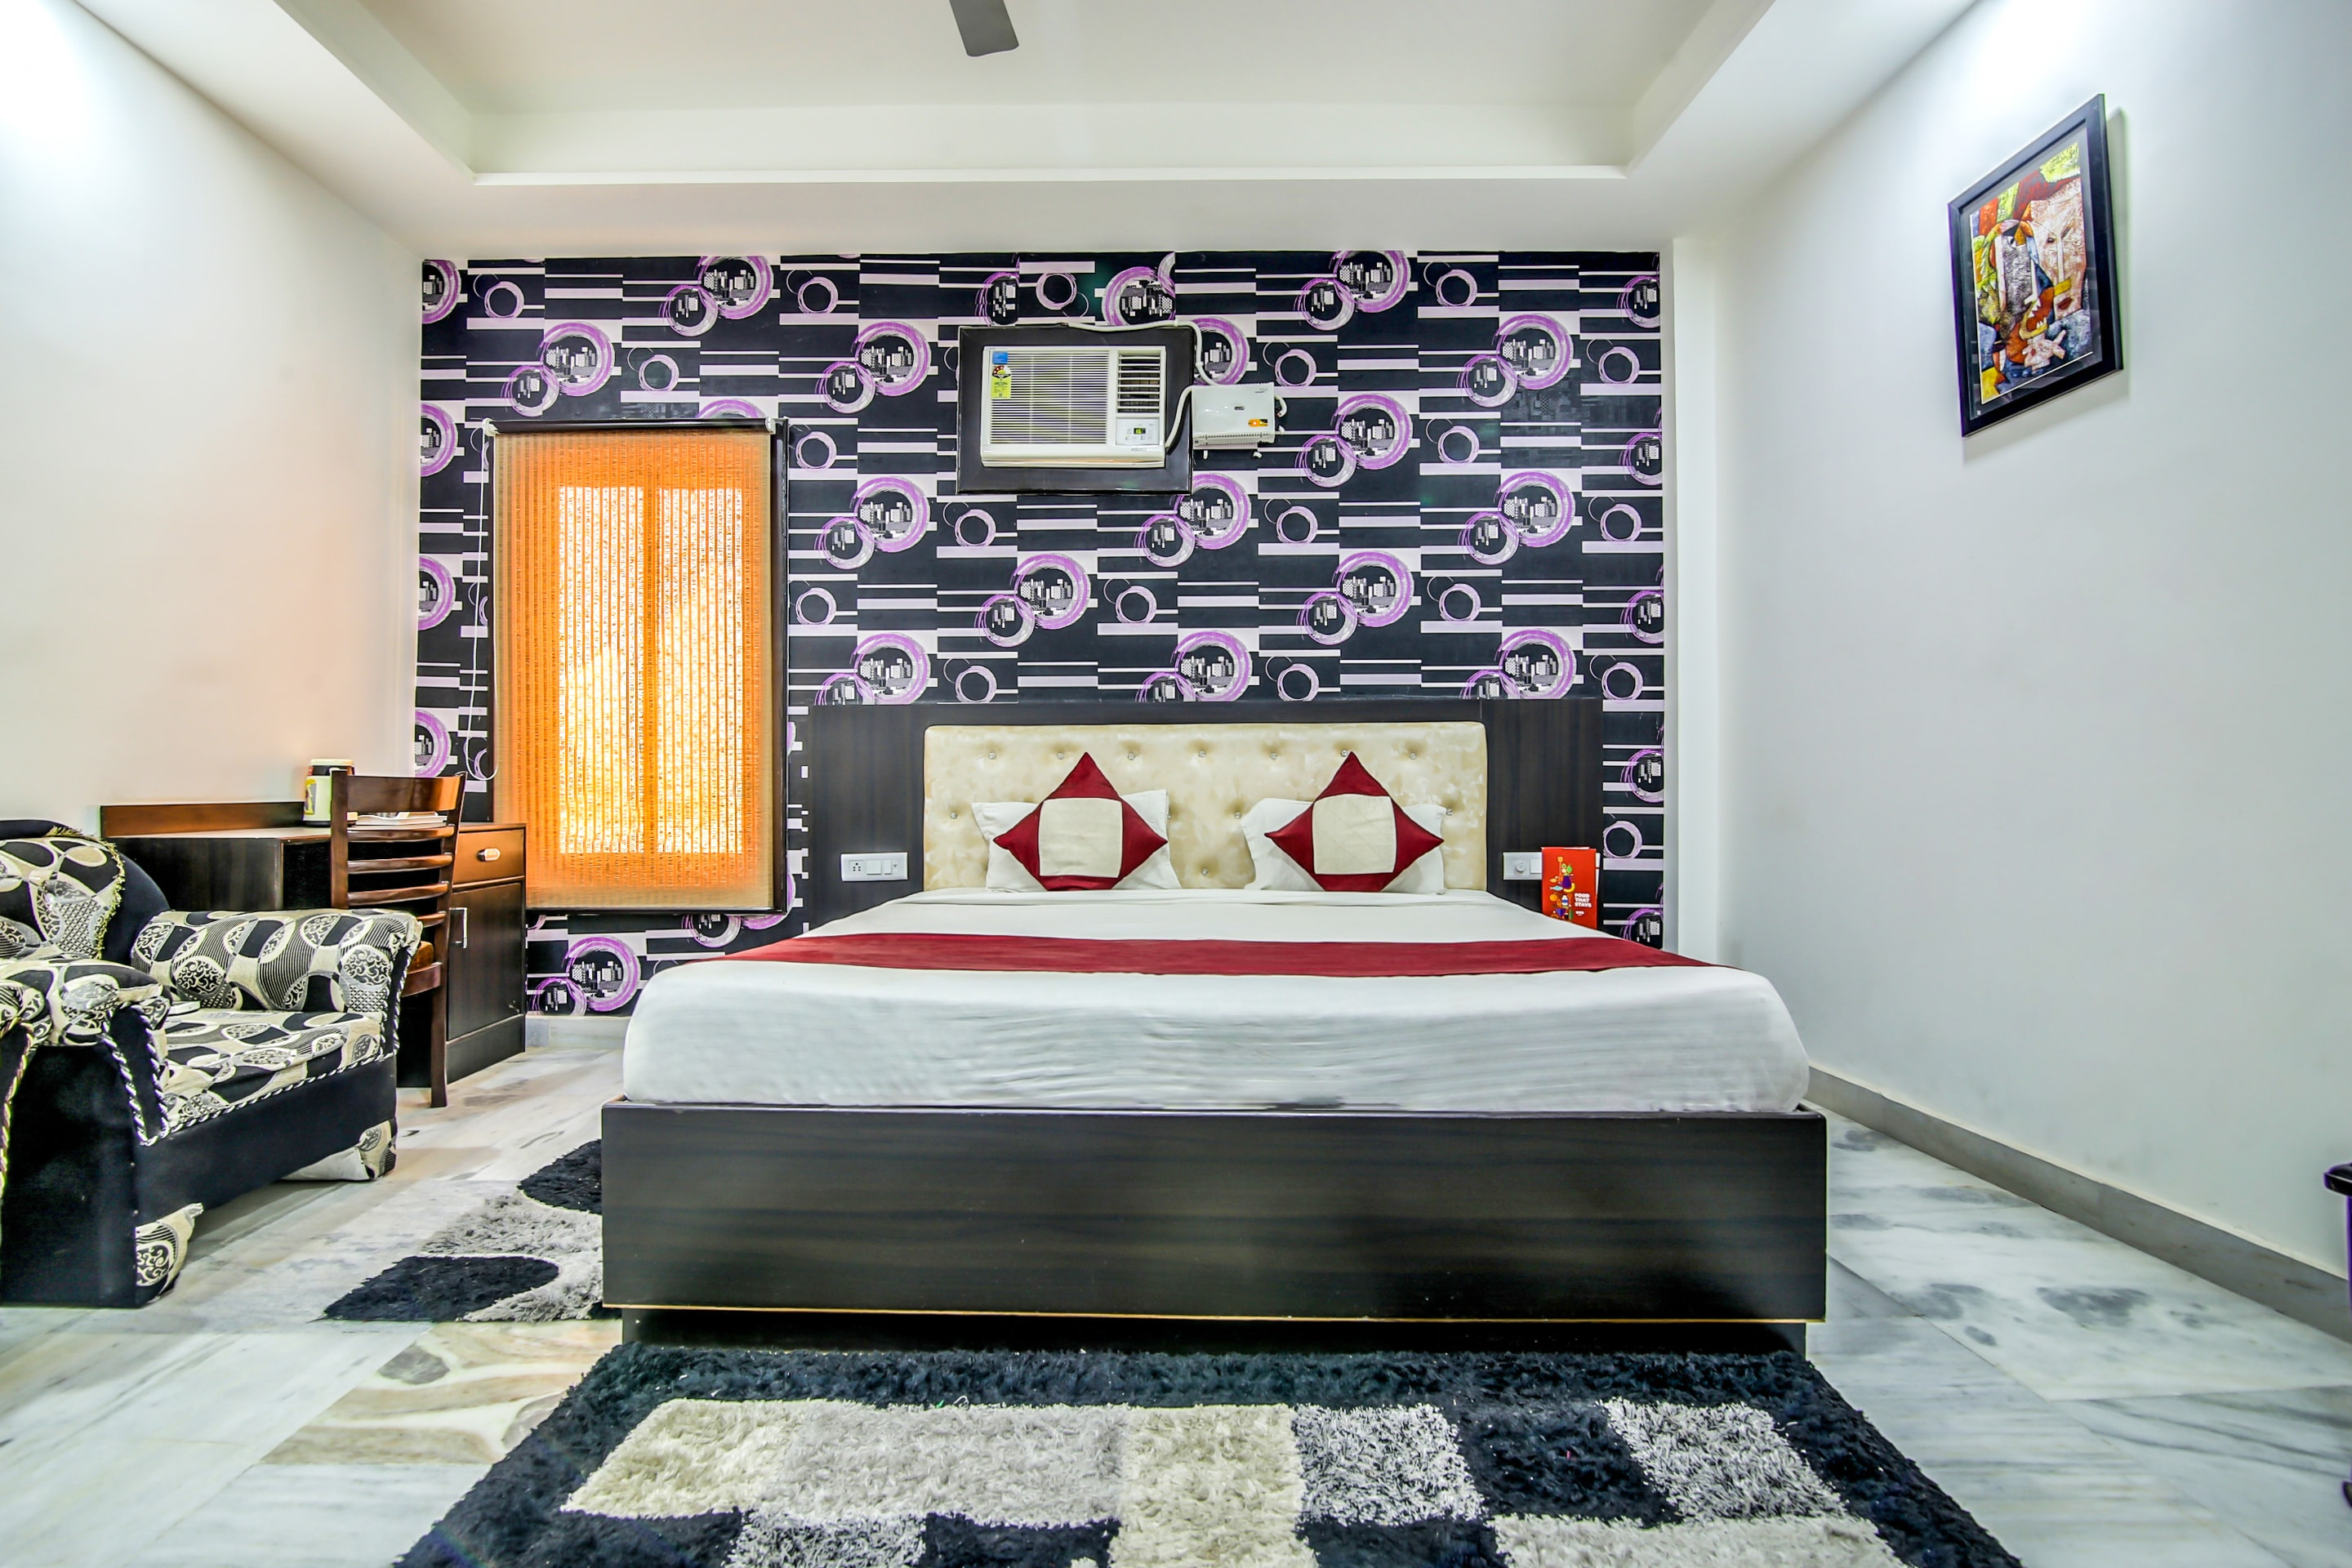 Hotel Gallarey OYO 8888 Riga Home Stay Agra